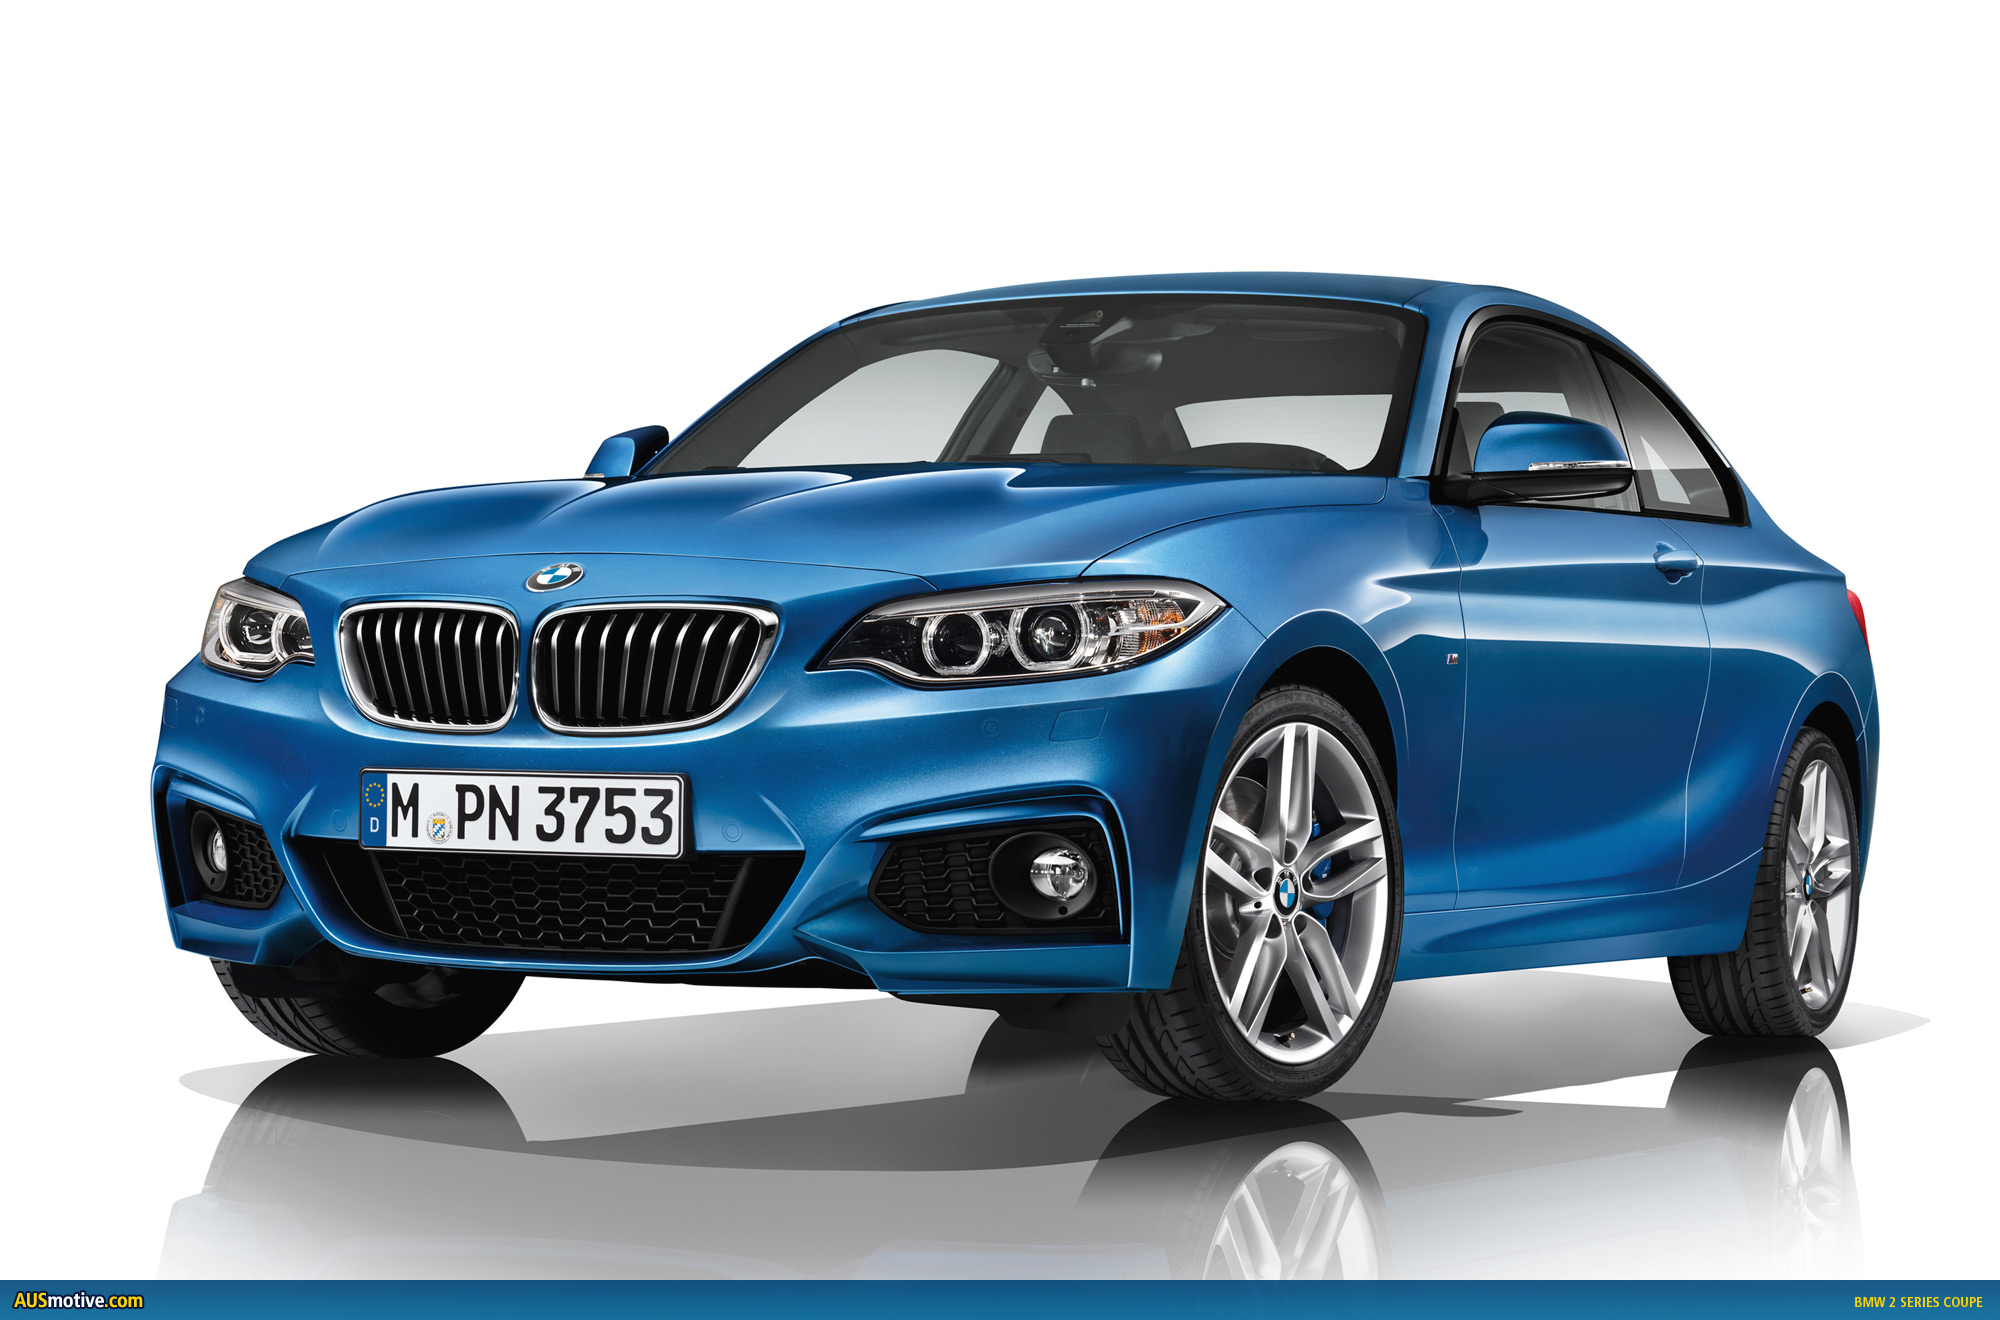 Bmw 2 Series Length Ausmotive Bmw Australia To Price M235i From 79 900